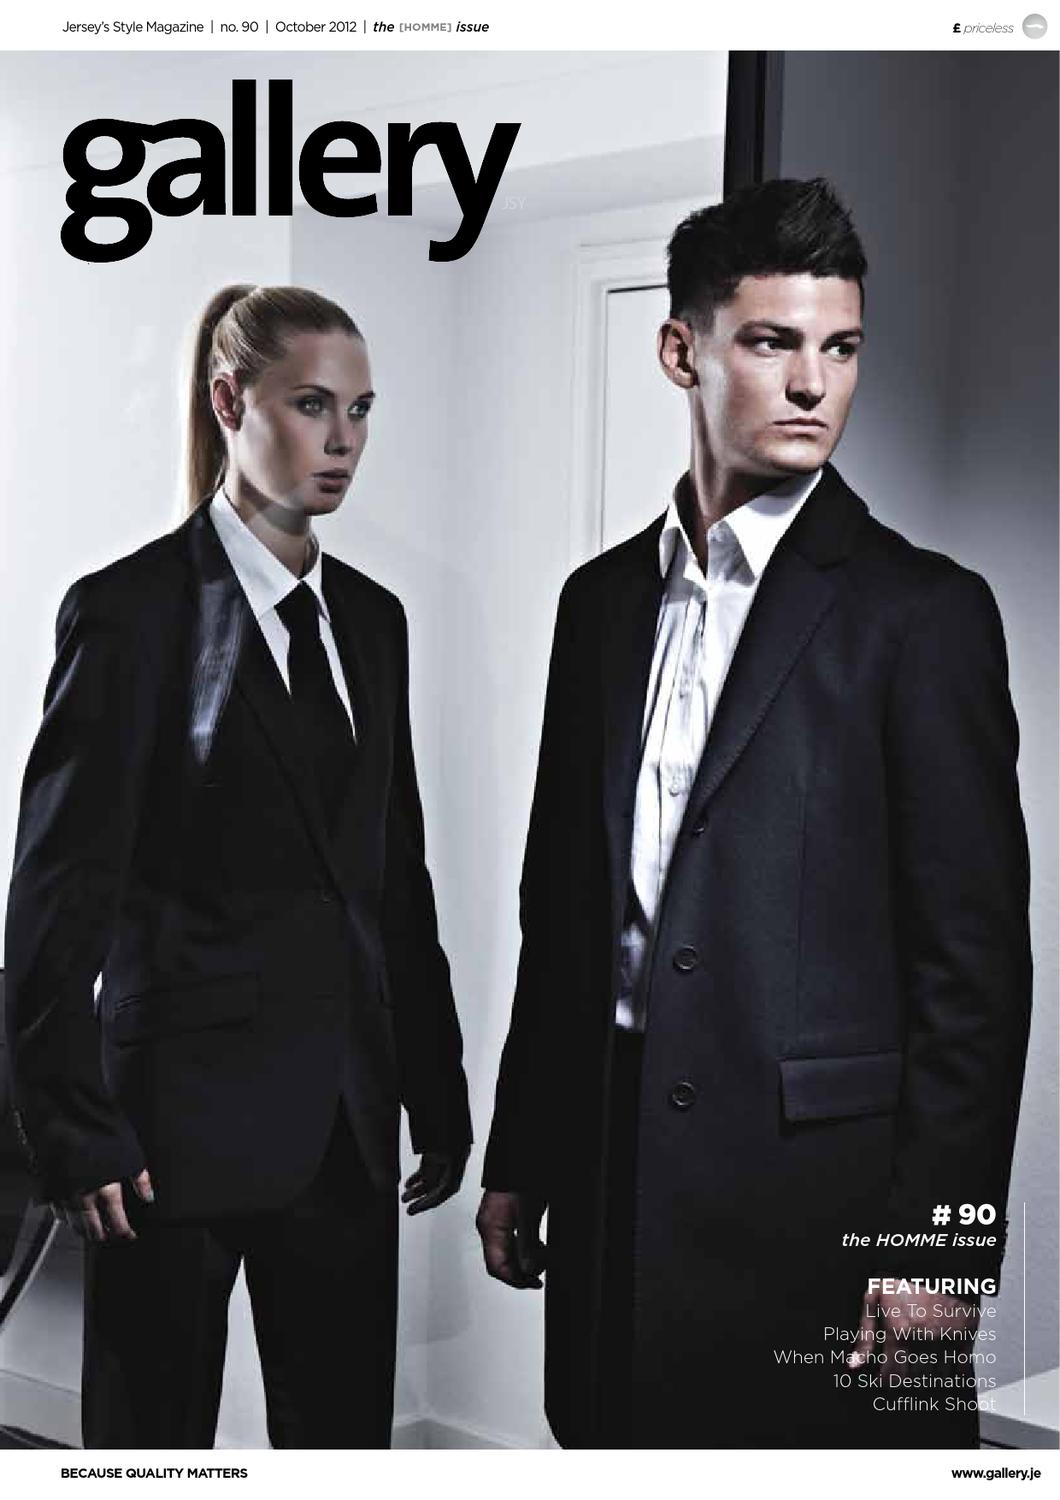 buy online 35d45 27696 Gallery Magazine issue 90 -  The Homme Issue  by factory - issuu